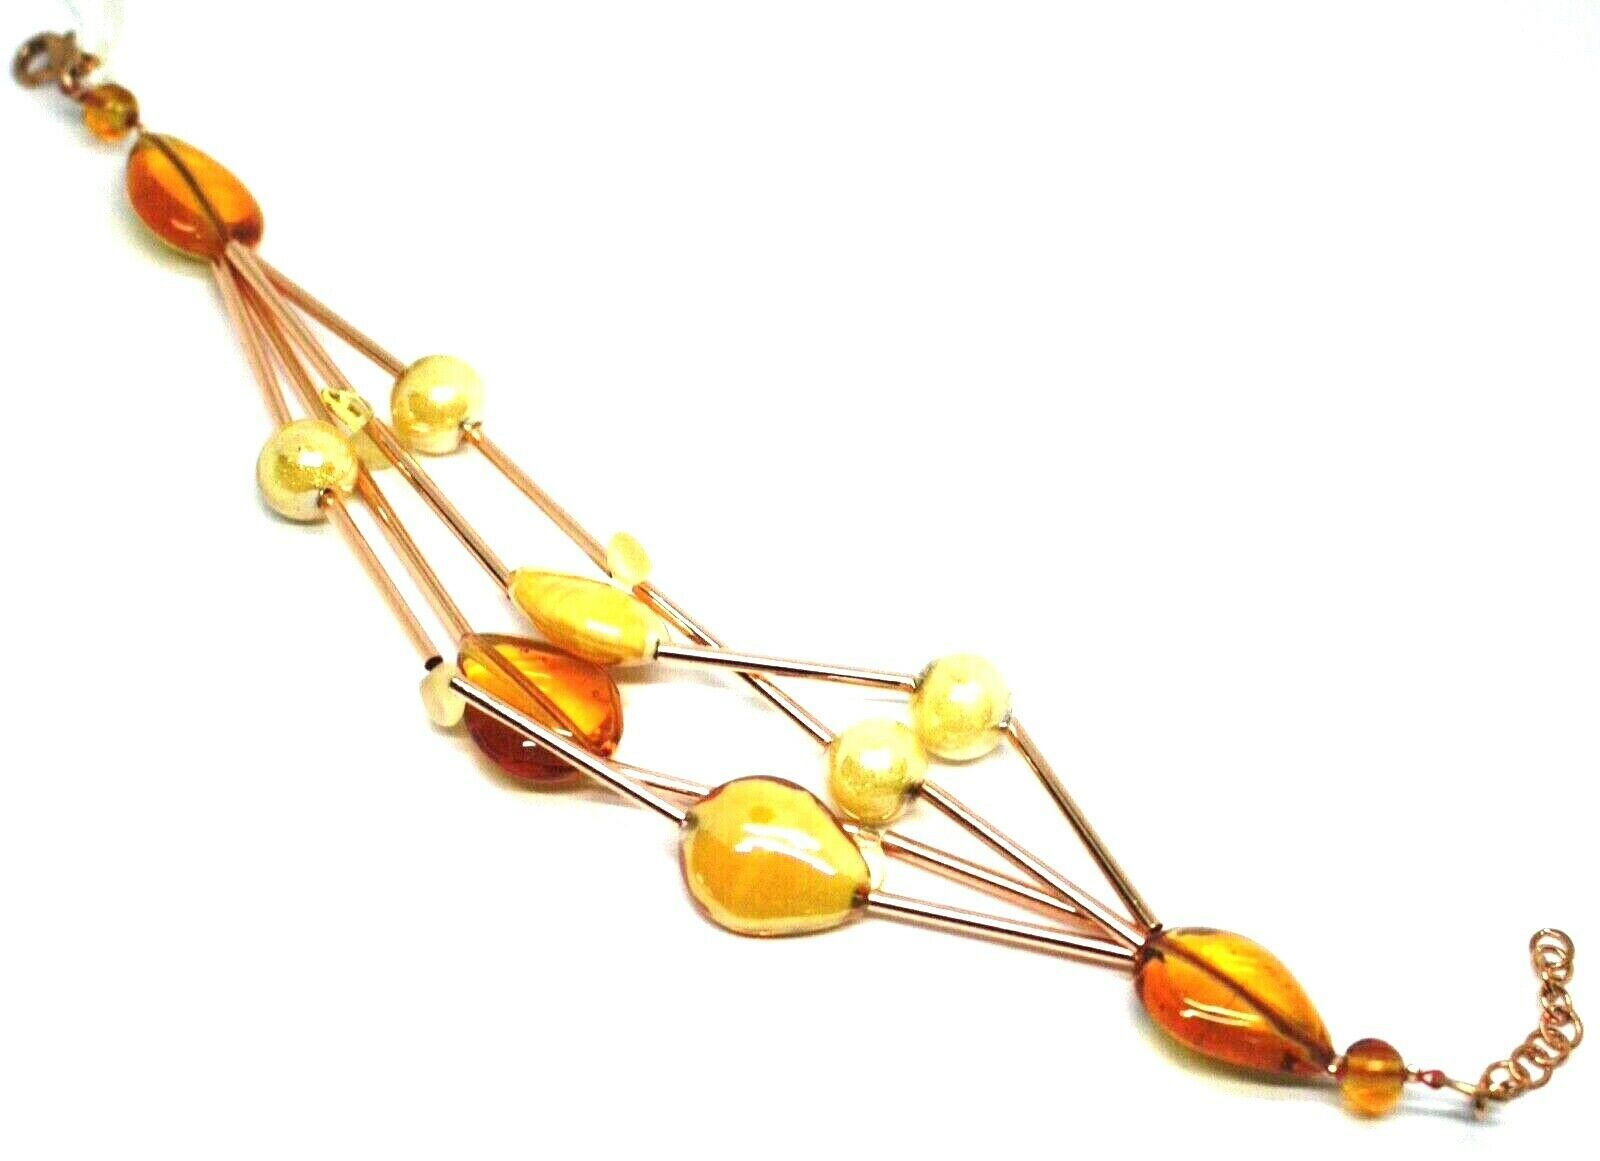 ROSE BRACELET MULTI WIRES TUBE ORANGE DROP SPHERE PETALS MURANO GLASS ITALY MADE